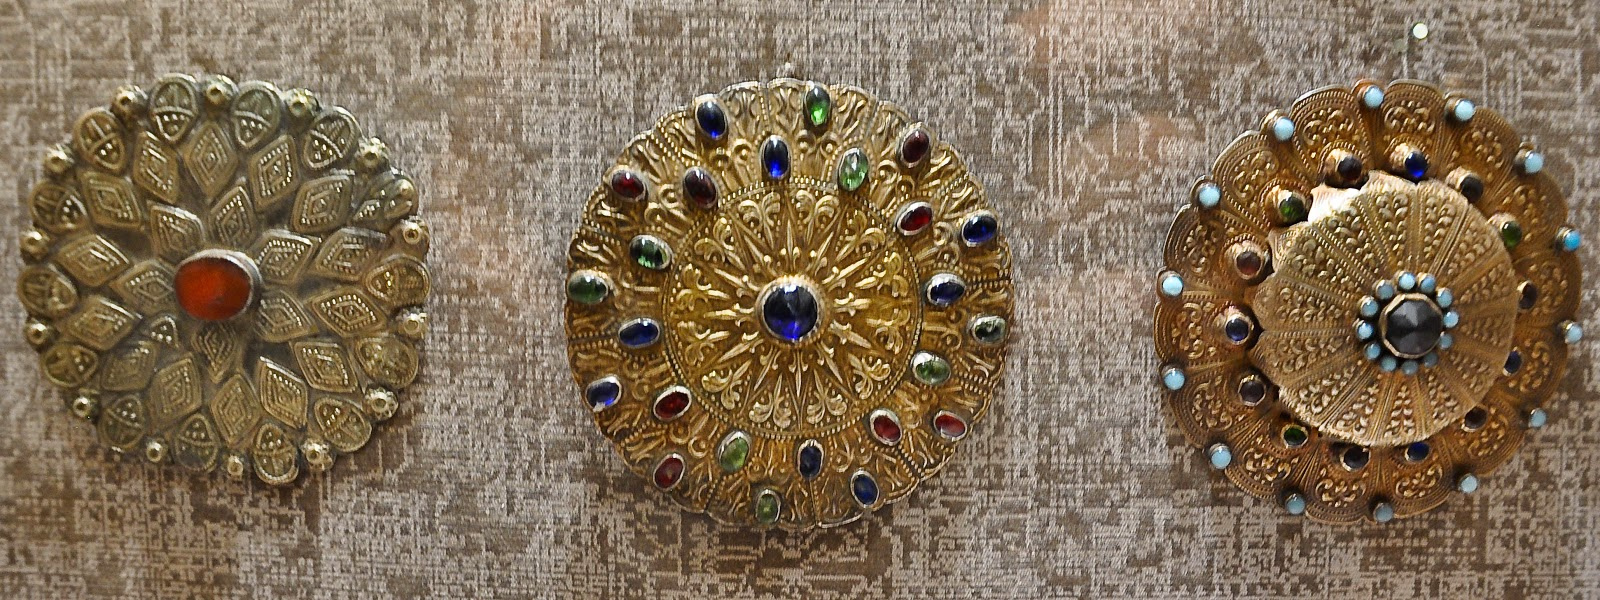 Three jewellery pieces in the Museum of the Jewelllery in Vicenza